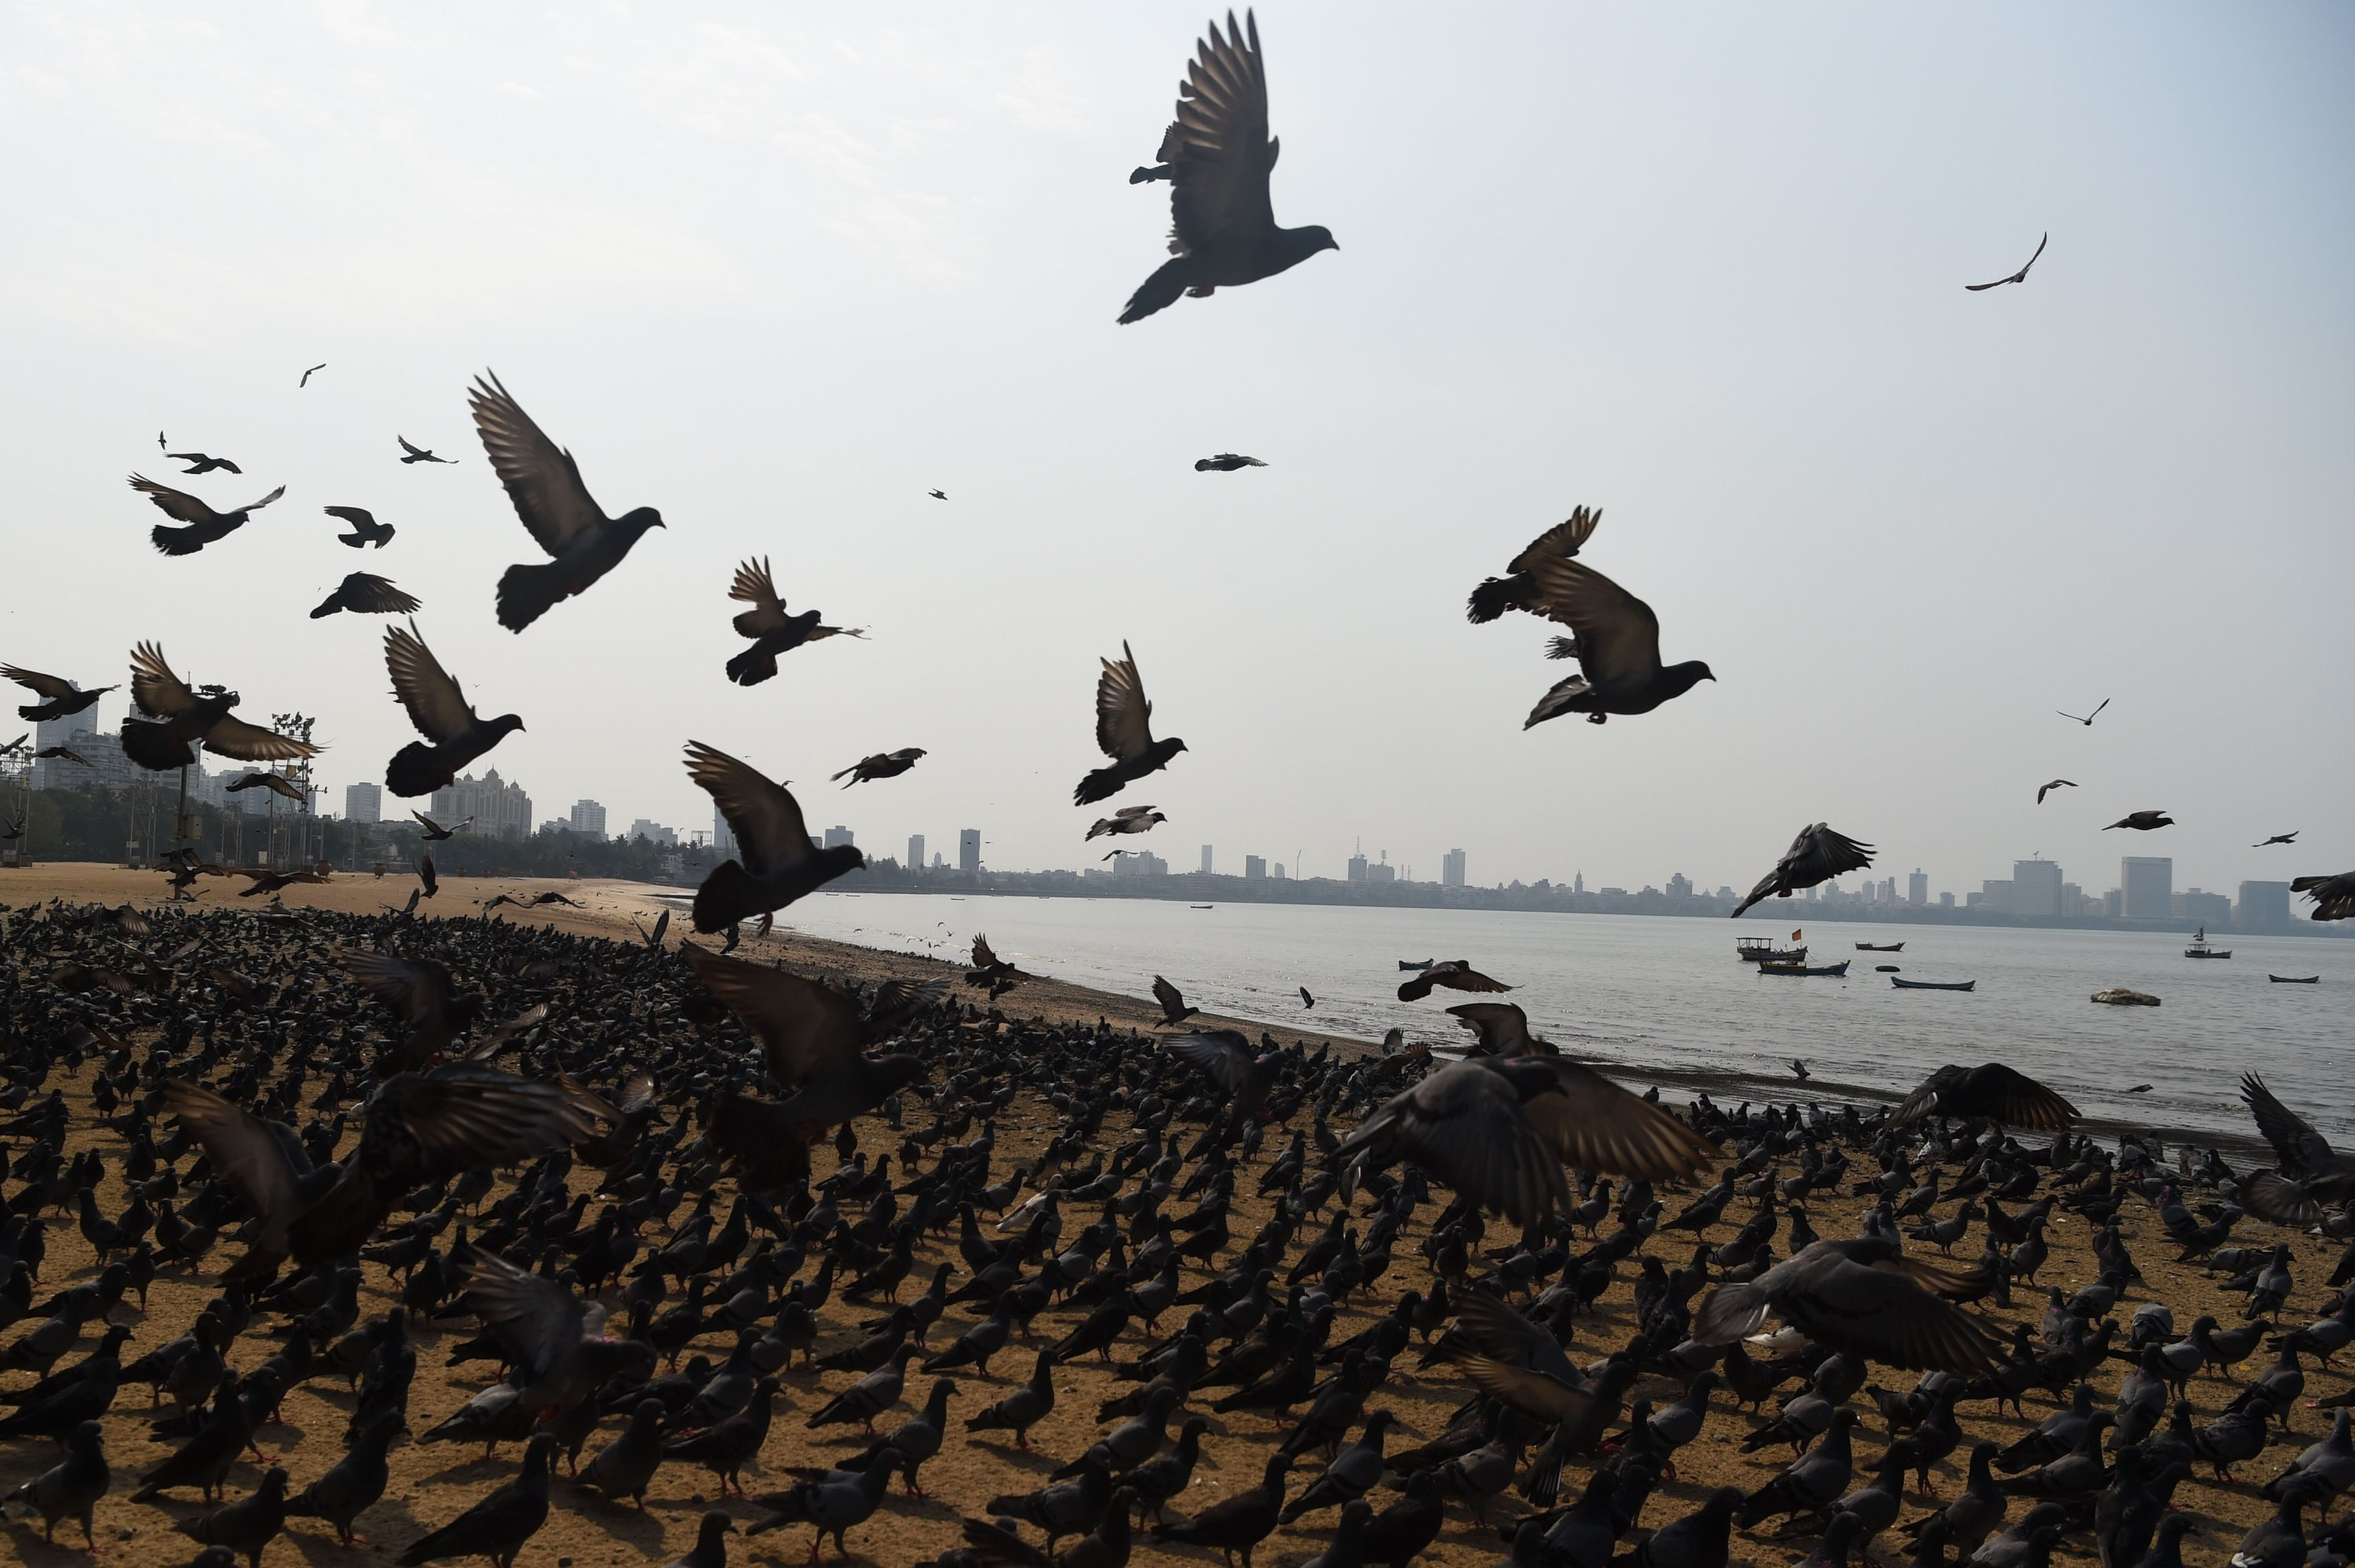 Birds gather on the Chowpatty beach during lockdown in Mumbai, India, March 25, 2020. (AFP Photo)